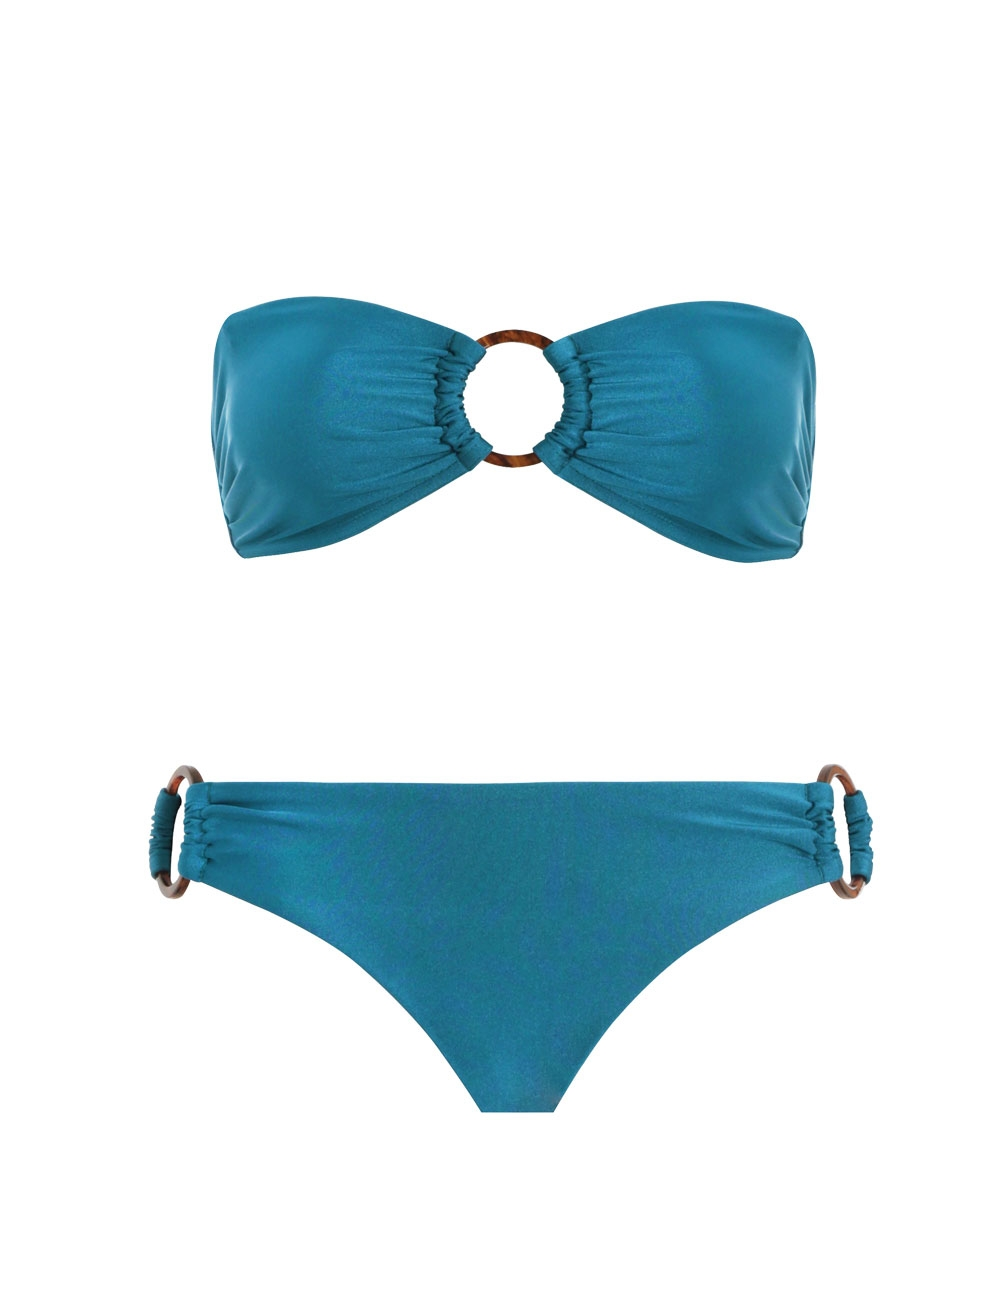 d4dec7c41 1.4986wway.teal.teal-wayfarer-ring-bandeau-bikini -flat.jpg?width=500&height=645&canvas=500:645&quality=100&bg-color=255,255,255&fit=bounds